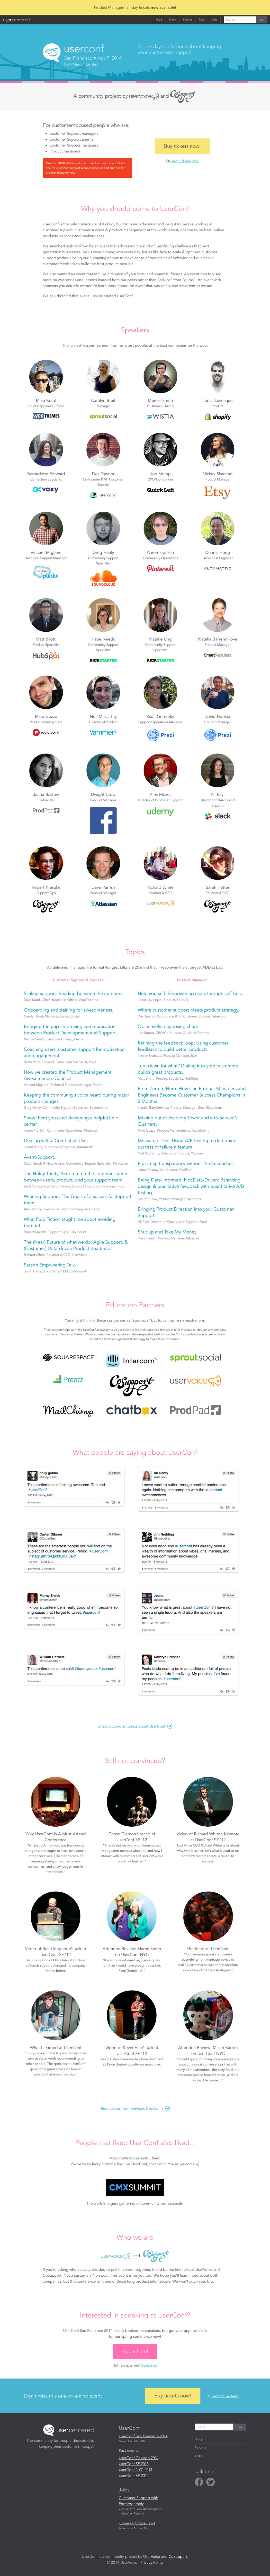 UserConf 2014 Website Screenshot